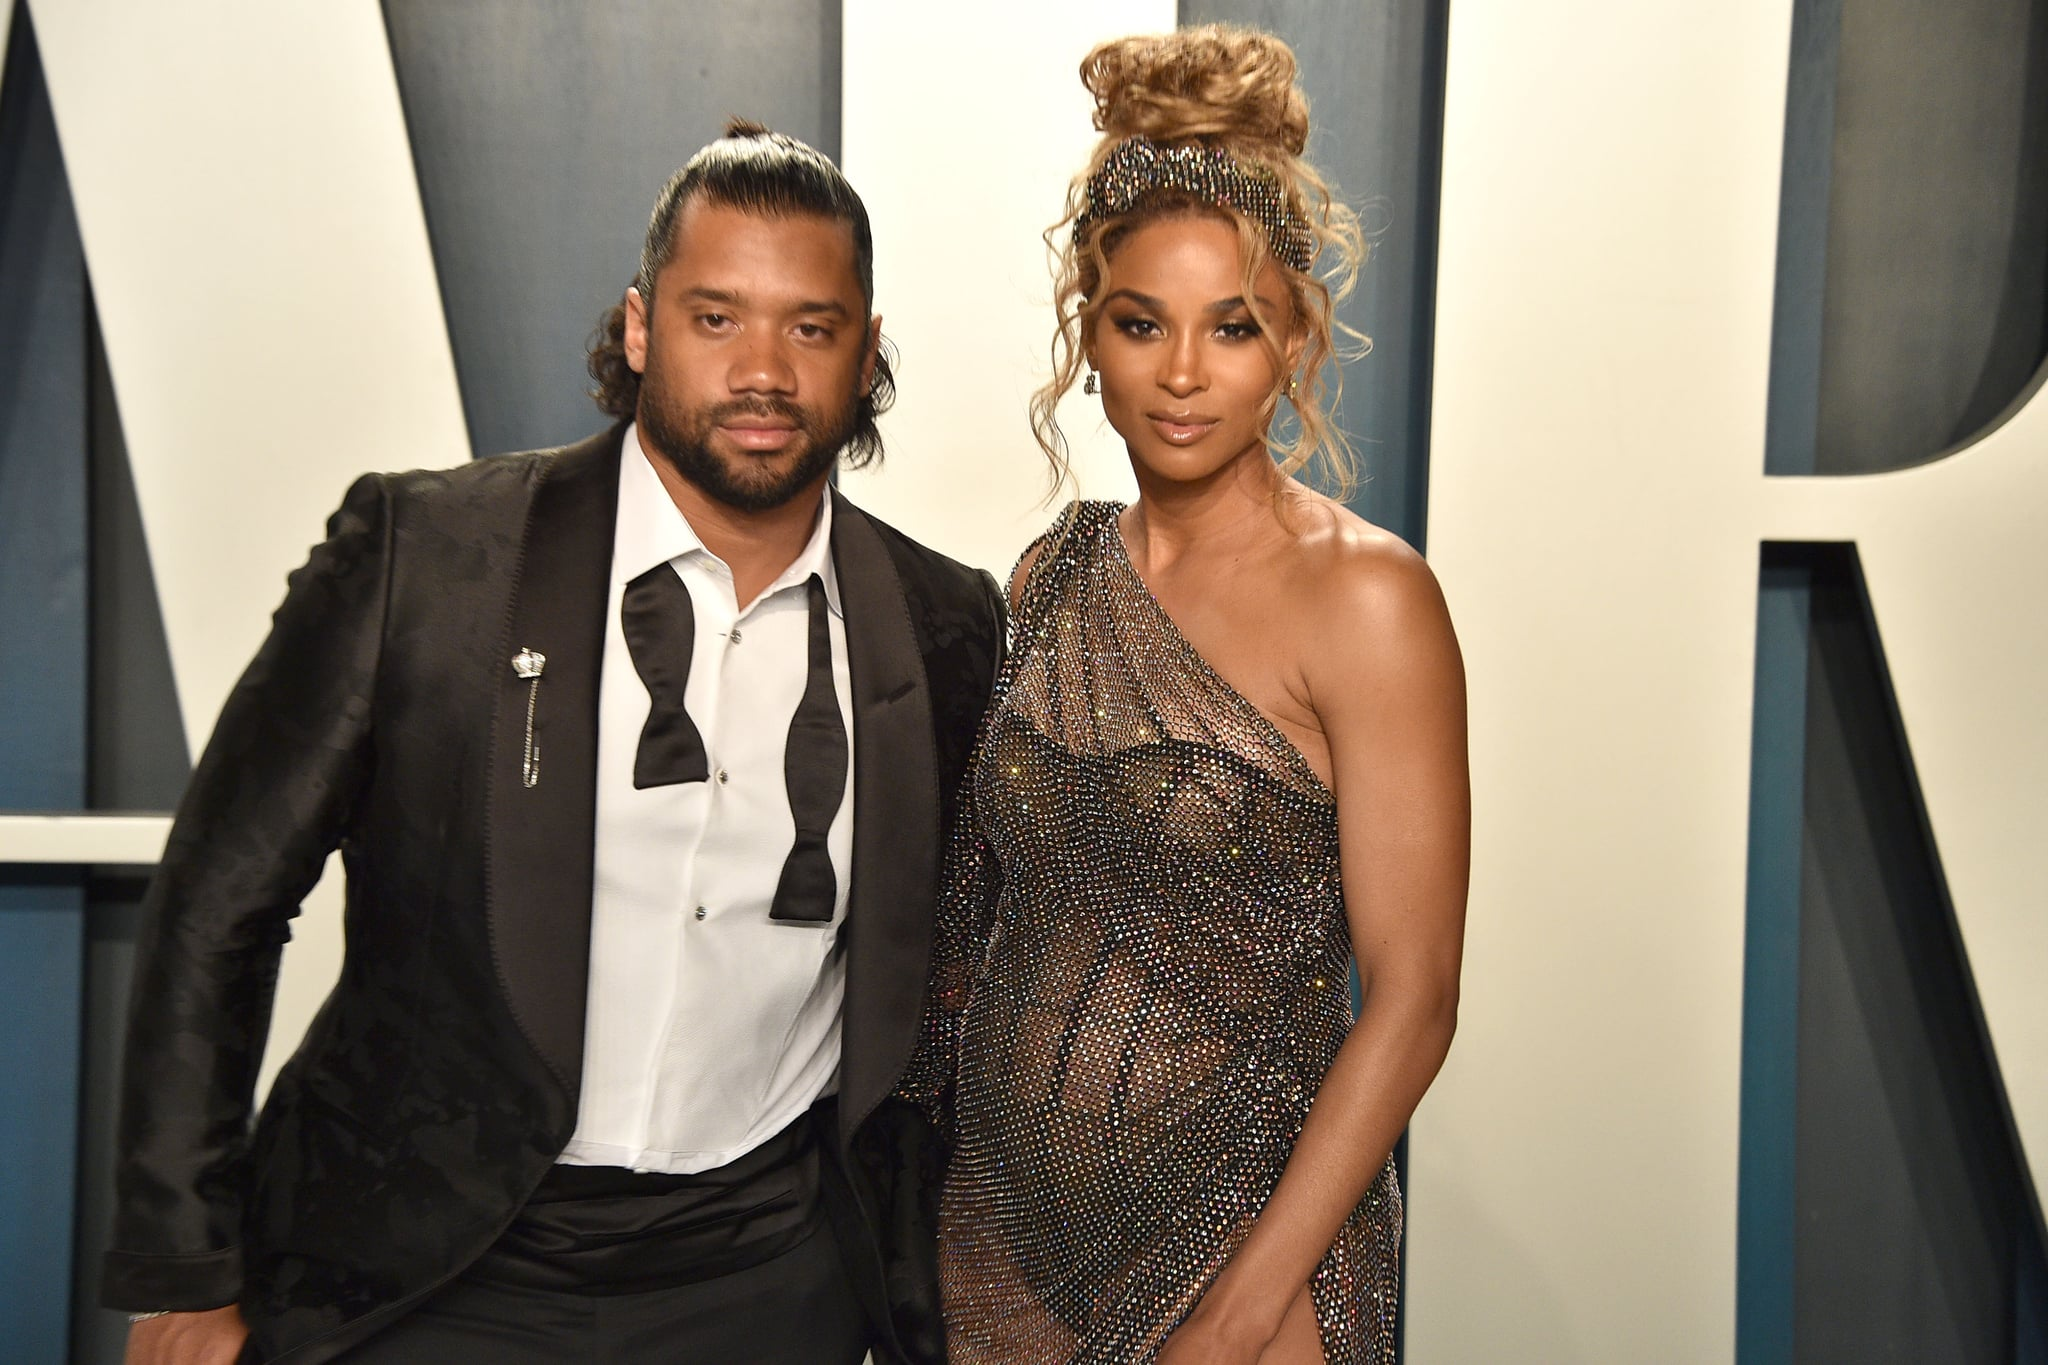 BEVERLY HILLS, CALIFORNIA - FEBRUARY 09: Russell Wilson and Ciara attend the 2020 Vanity Fair Oscar Party at Wallis Annenberg Centre for the Performing Arts on February 09, 2020 in Beverly Hills, California. (Photo by David Crotty/Patrick McMullan via Getty Images)